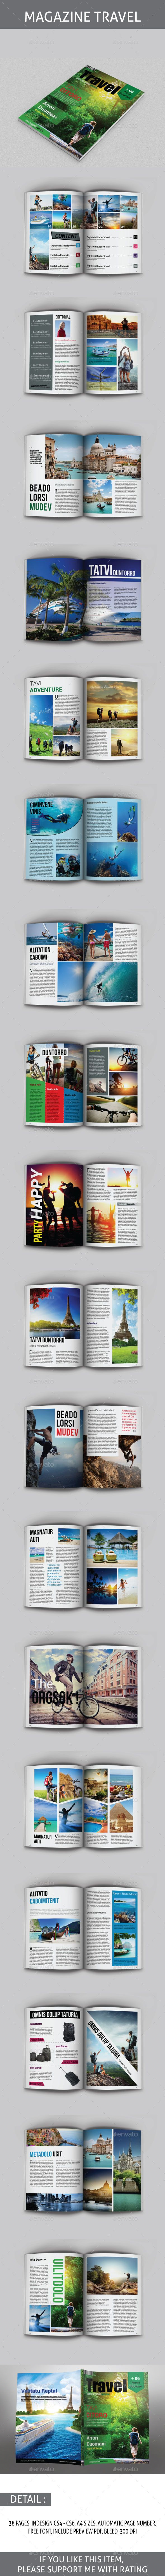 Travel Magazine Template — InDesign INDD #design #layout • Available here → https://graphicriver.net/item/travel-magazine-template/8779120?ref=pxcr